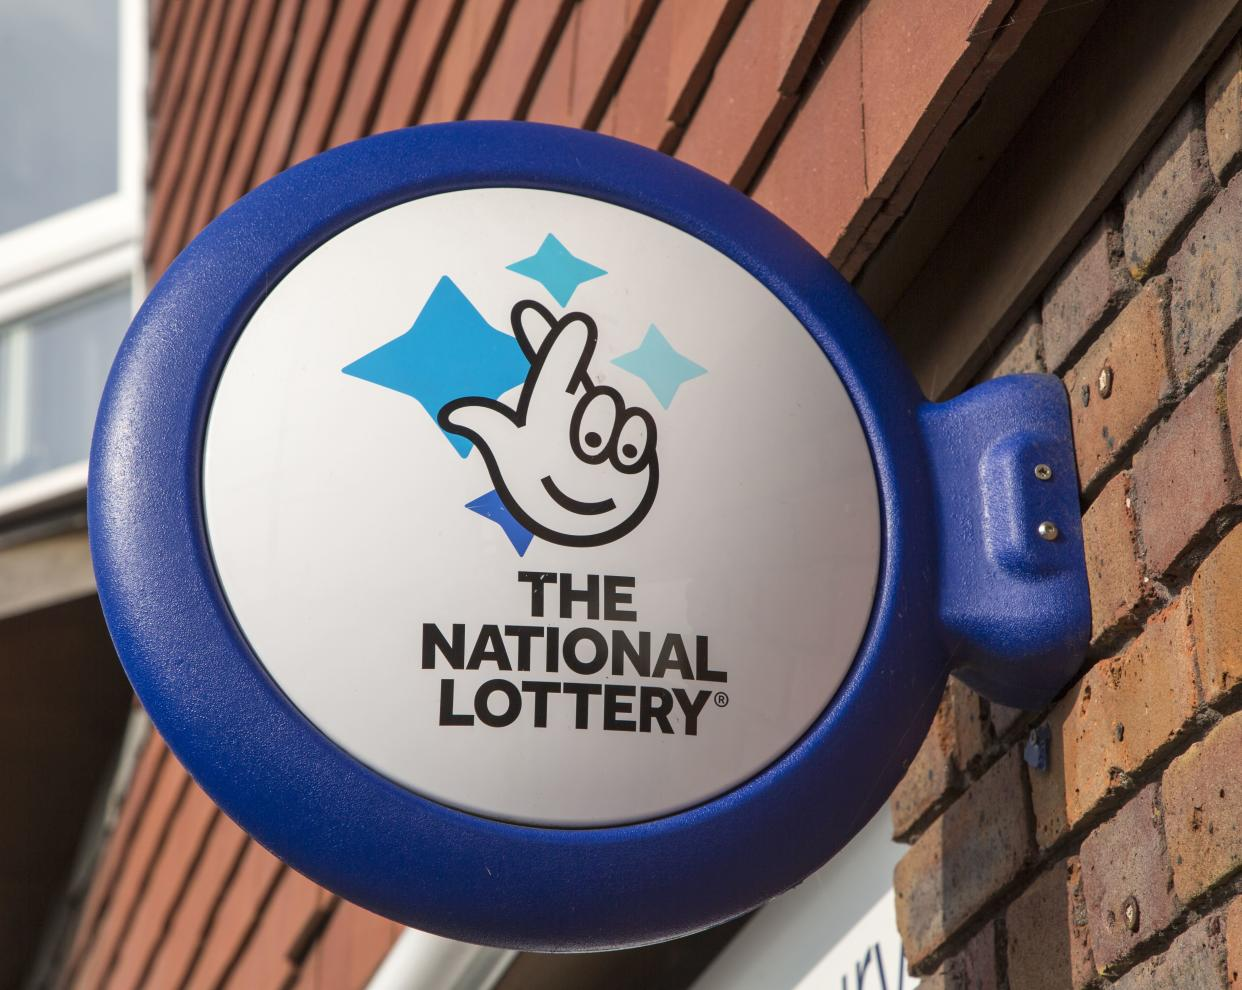 Wall mounted sign for the National Lottery, Amesbury, Wiltshire, England, UK. (Photo by: Geography Photos/Universal Images Group via Getty Images)